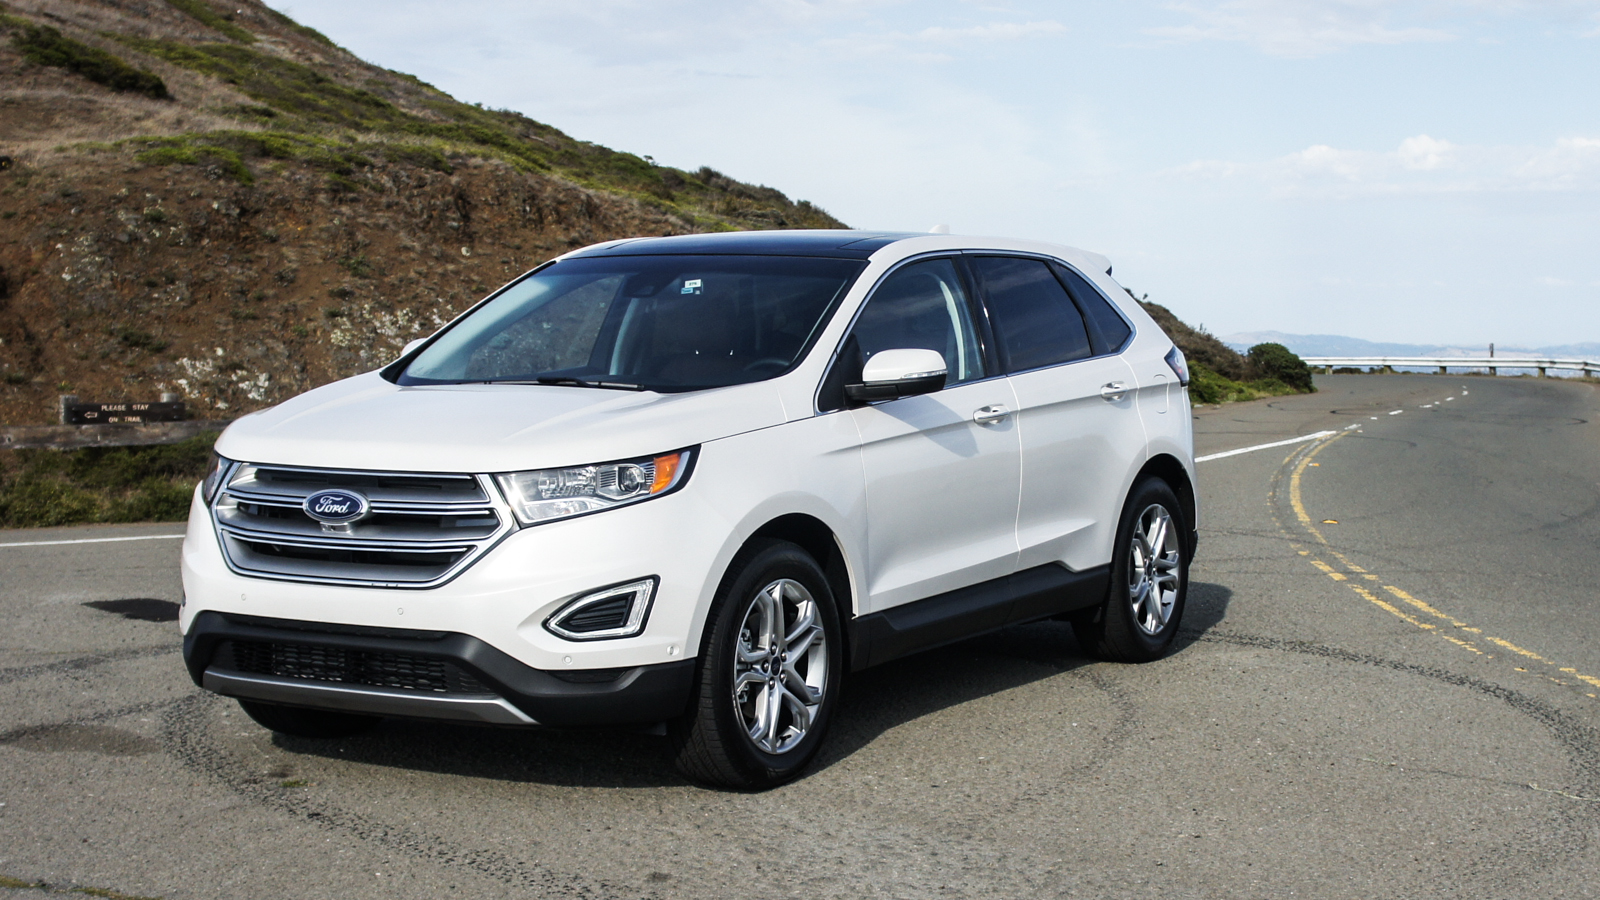 2015 ford edge review roadshow. Black Bedroom Furniture Sets. Home Design Ideas